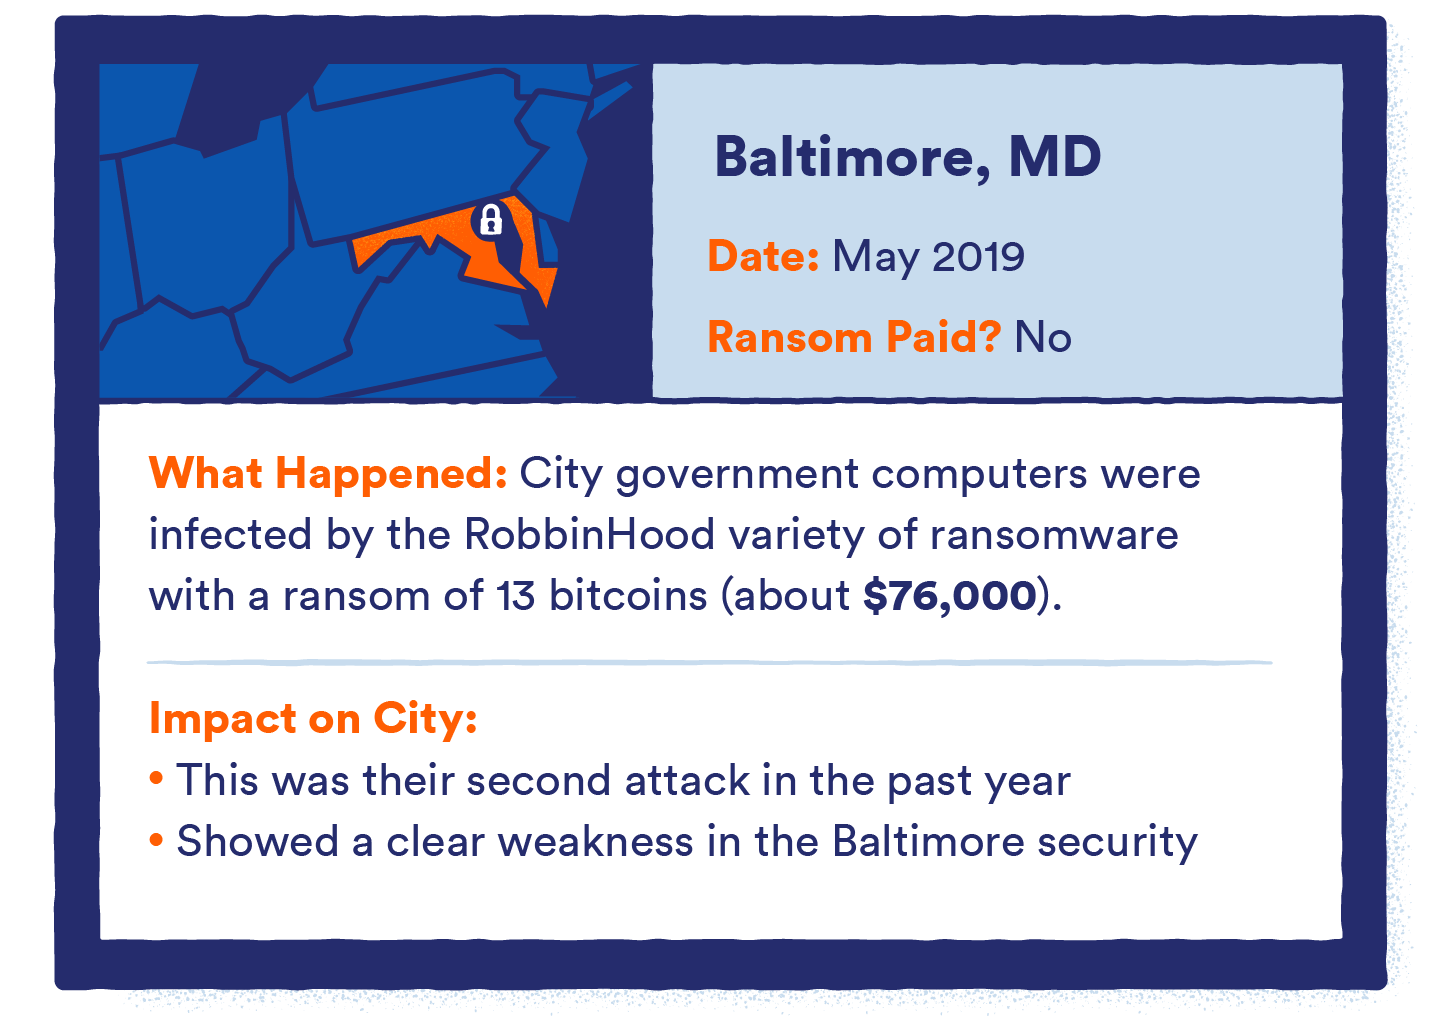 graphic that shows ransomware in baltimore